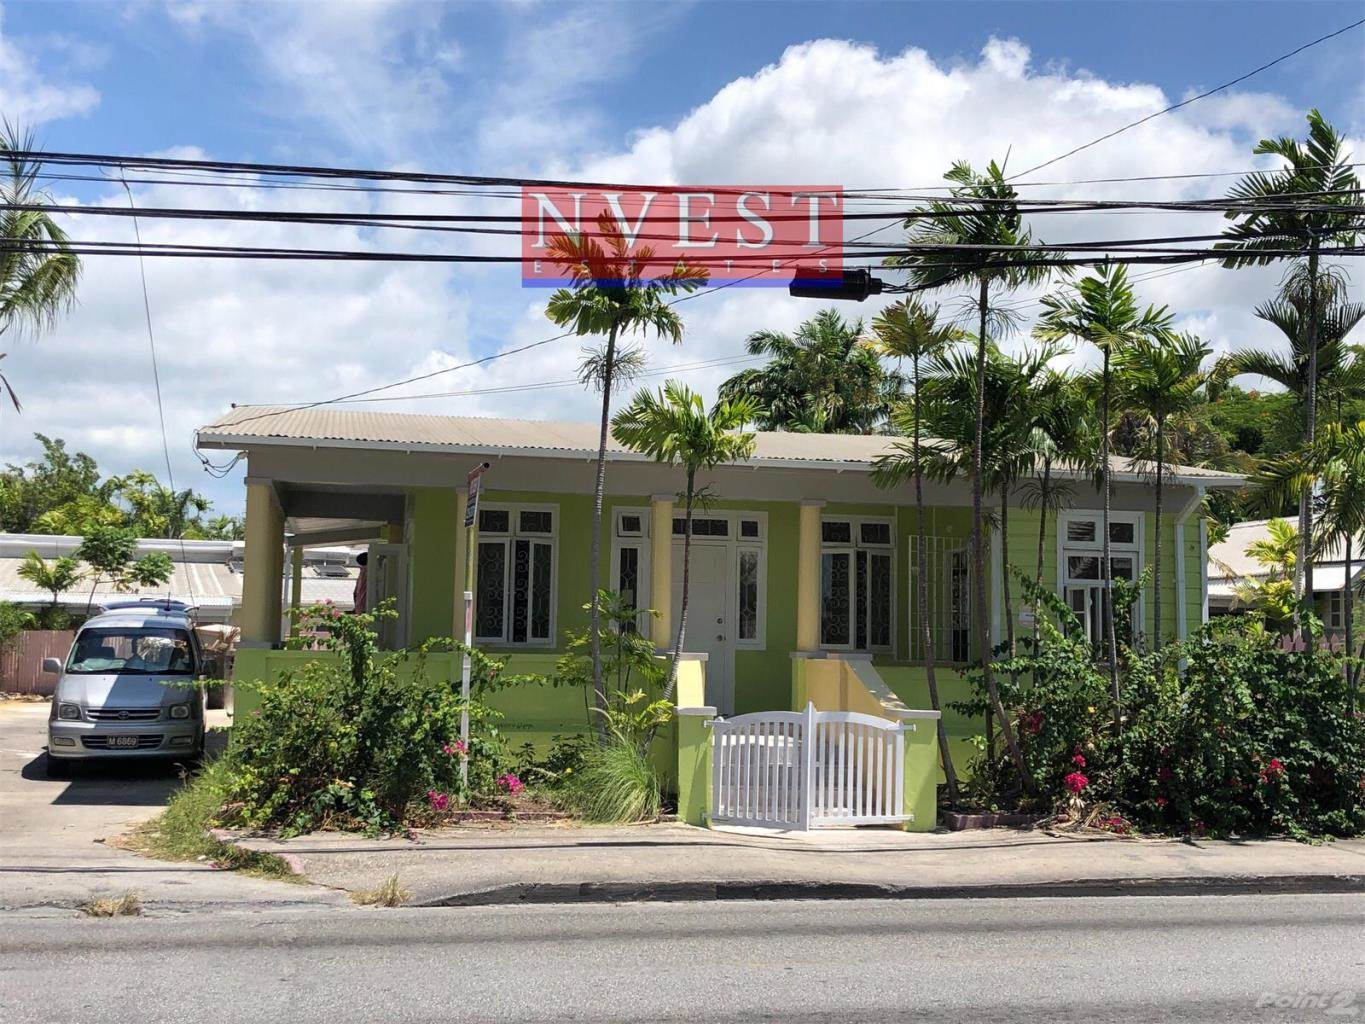 Comercial para alugar em Commercial house on busy Worthing Main Road, Worthing, Christ Church   , Barbados